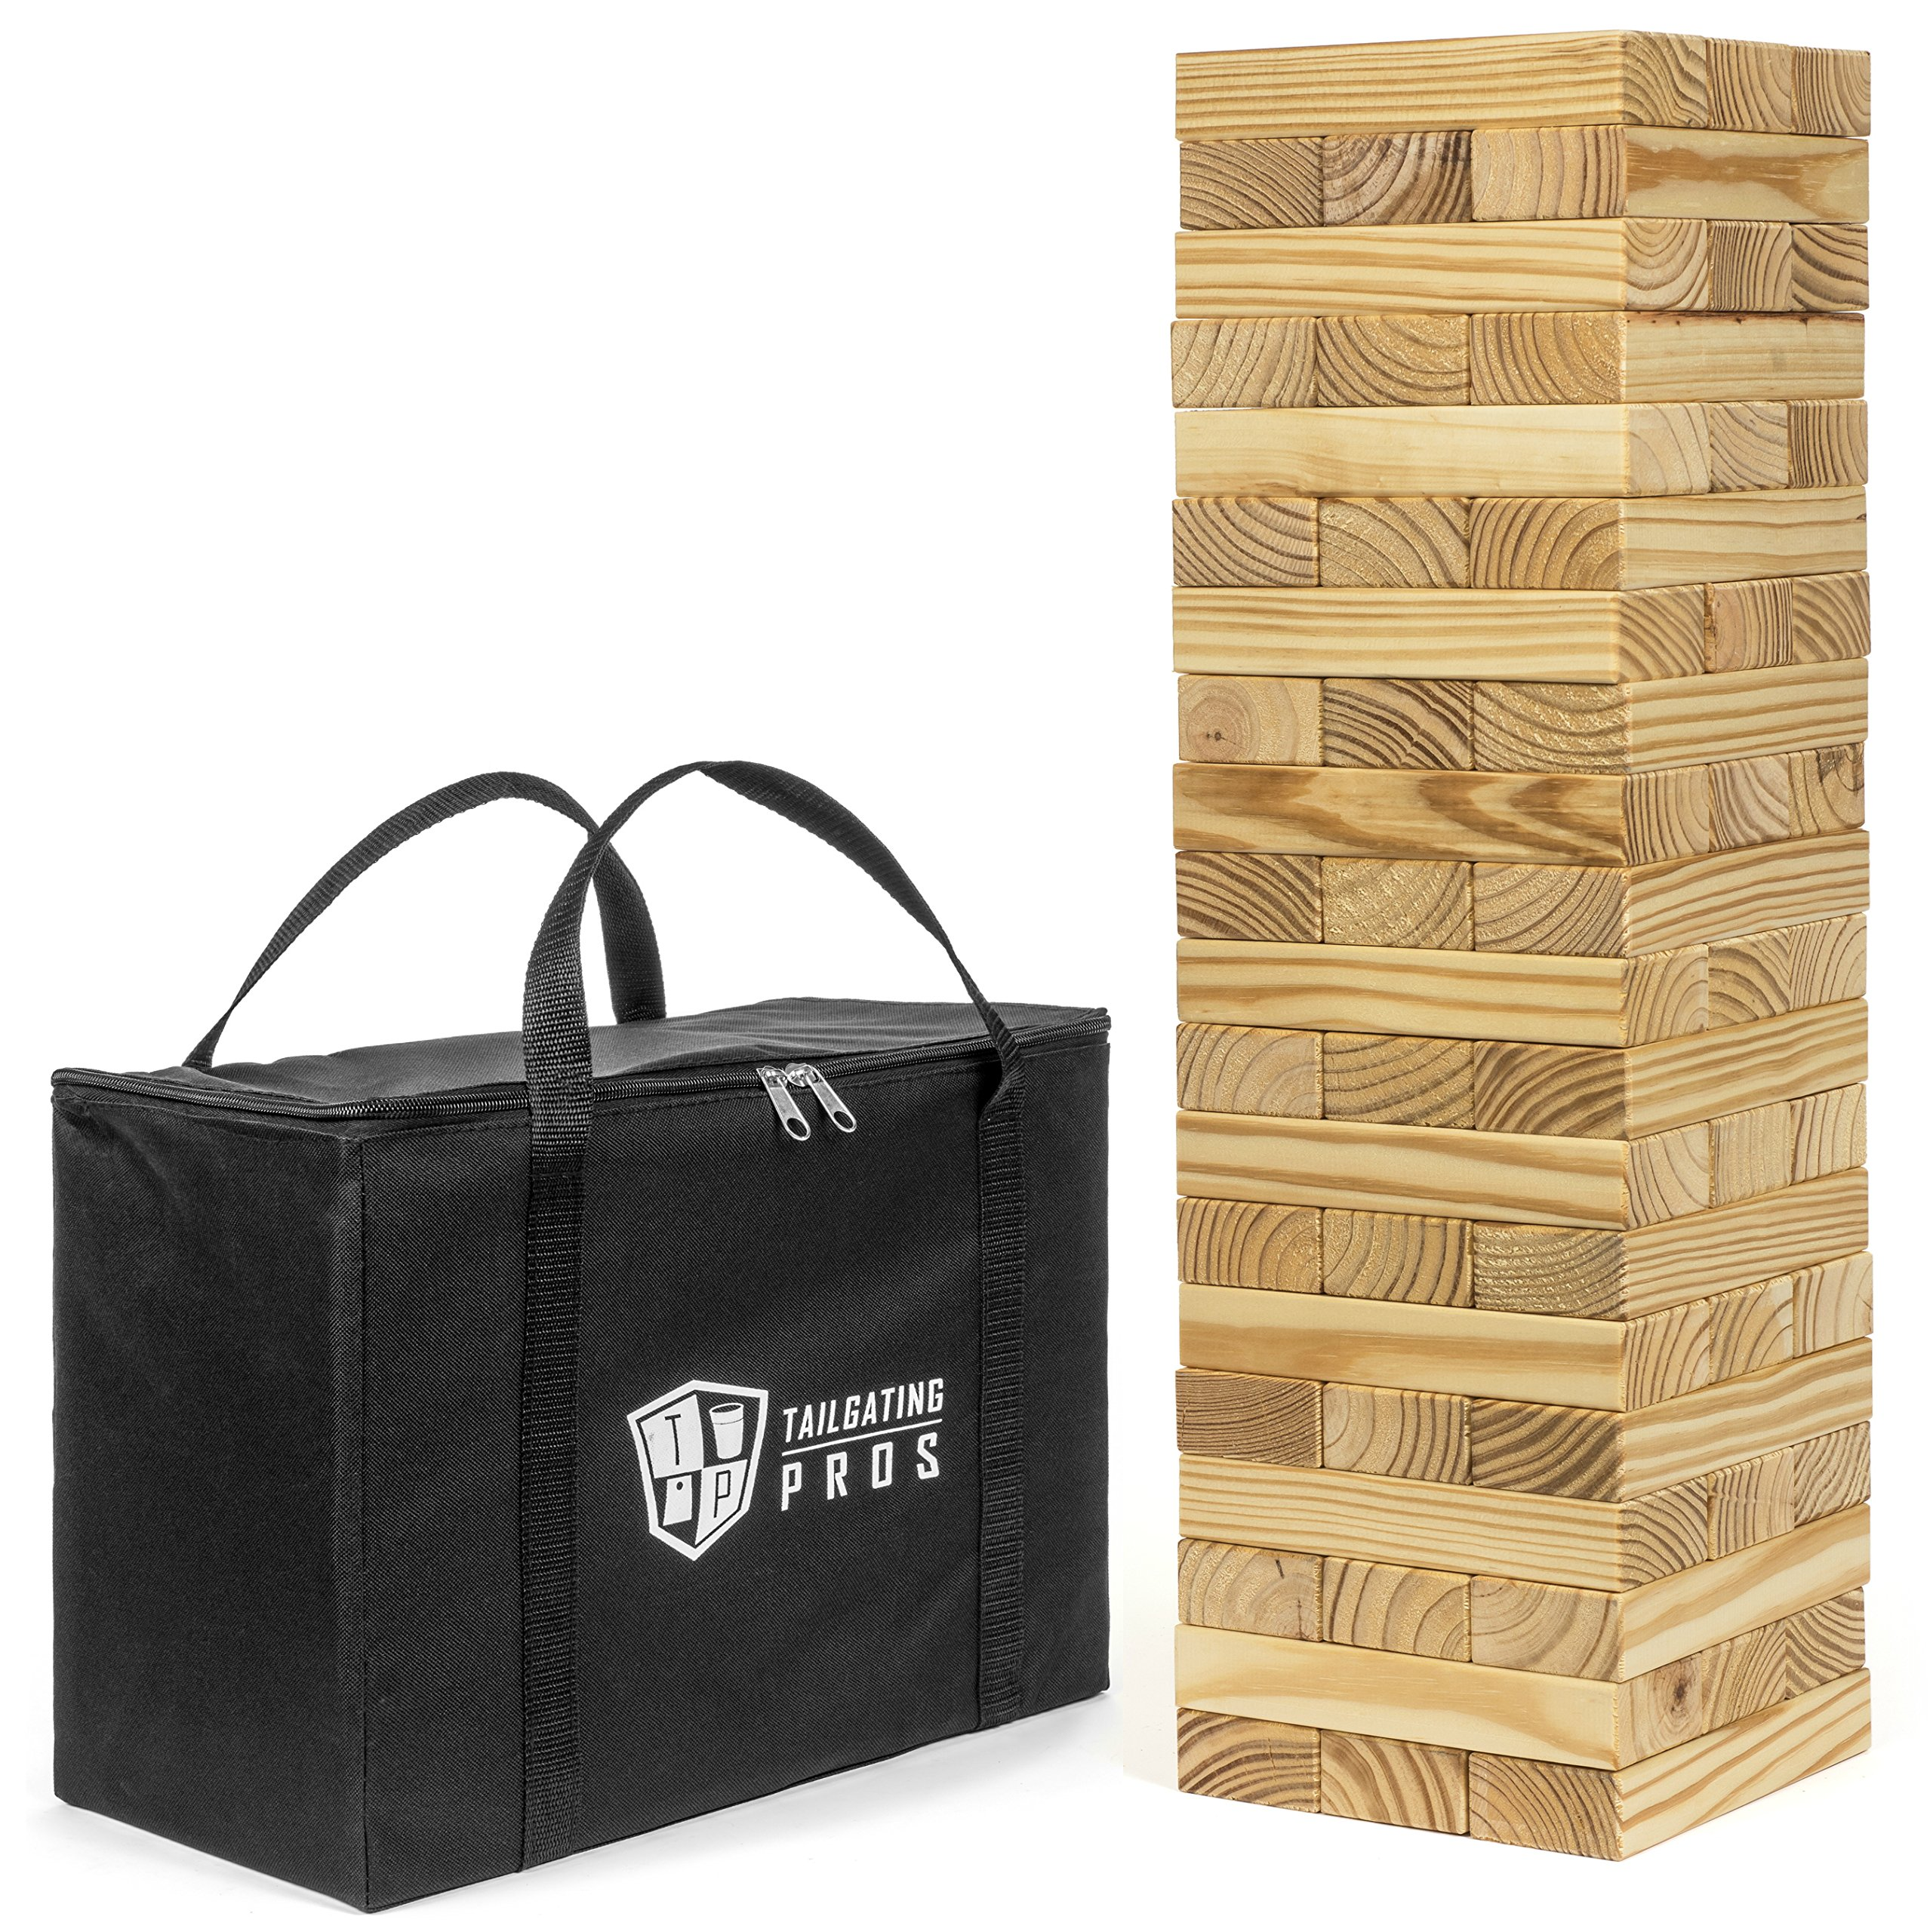 Tailgating Pros Giant Wooden Tumbling Timbers - 60 Blocks - Stacking Game - W/ Carrying Case by Tailgating Pros